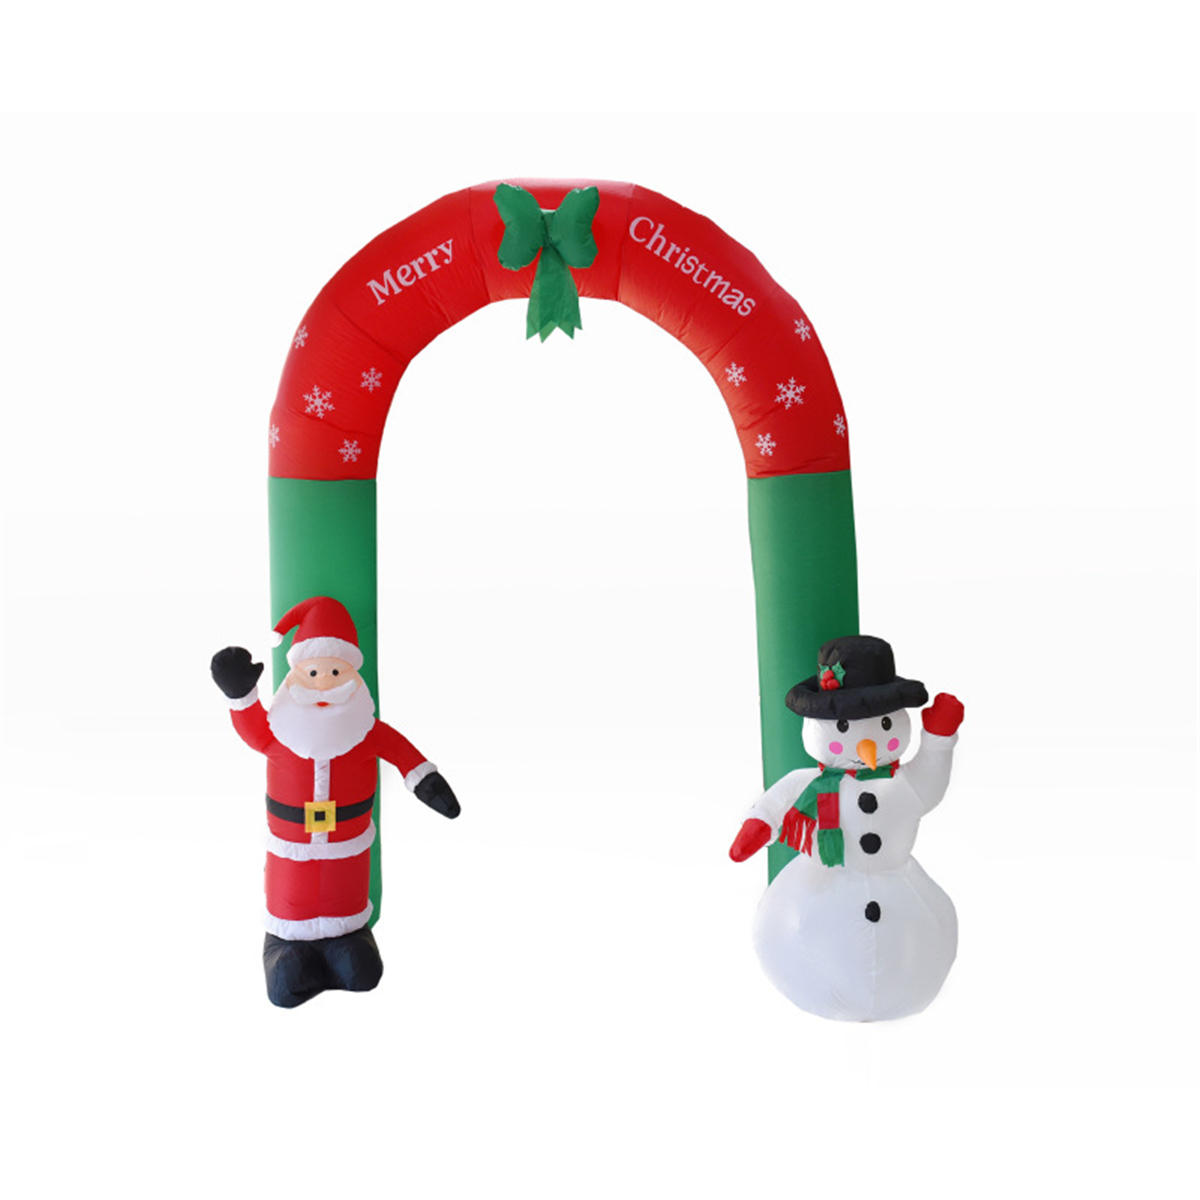 24m inflatable christmas arch santa snowman indoor outdoor decor decorations - Christmas Arch Decorations